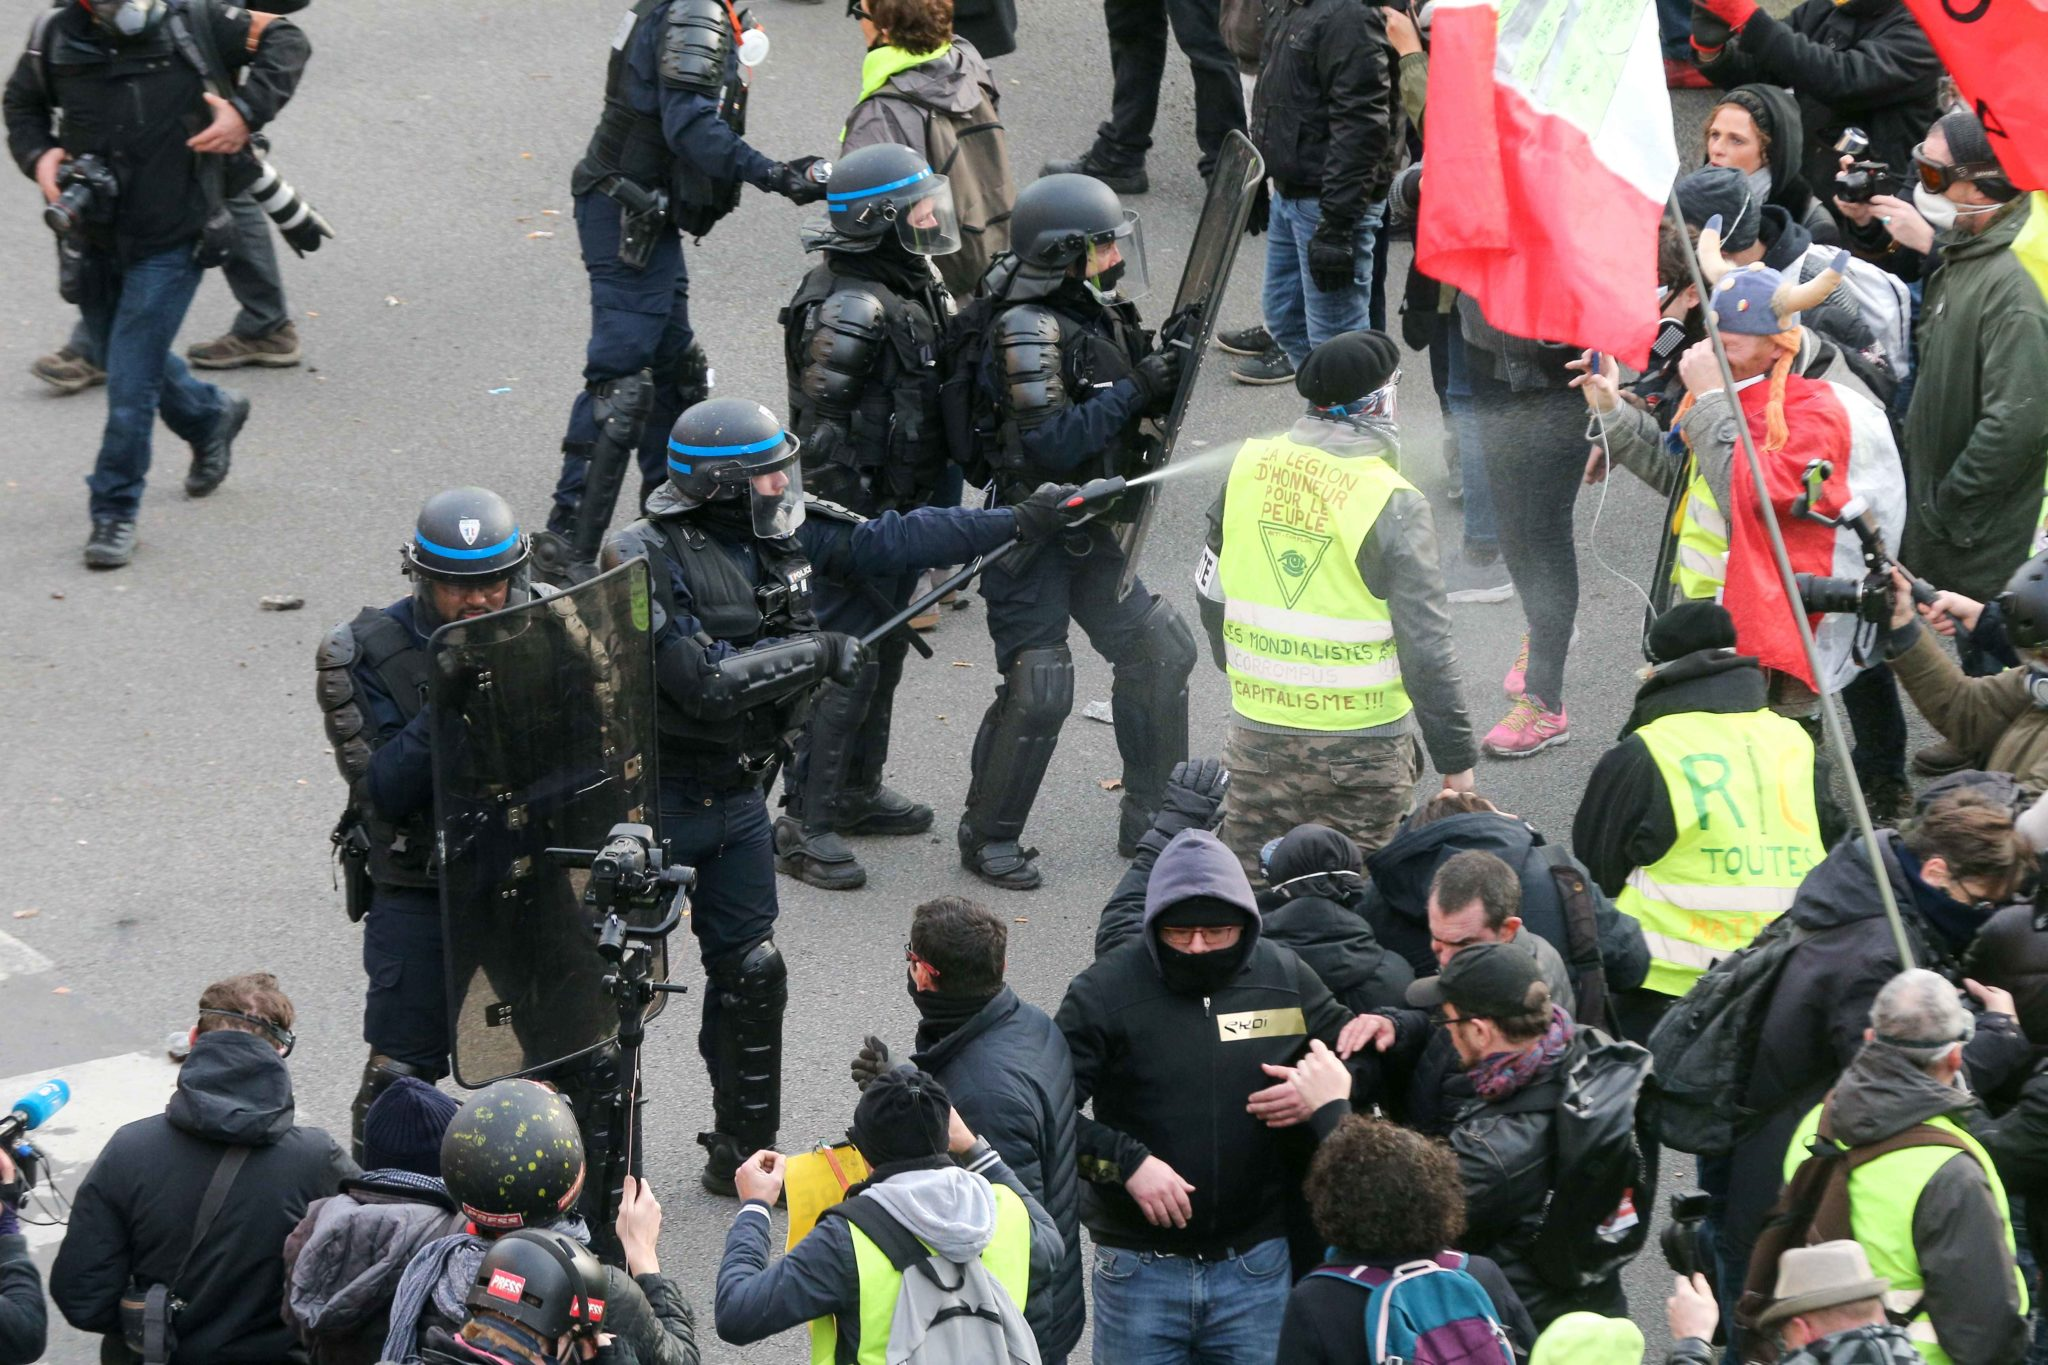 Protesters clash with riot police officers during a demonstration in Paris, on January 11, 2020, as part of a nationwide multi-sector strike against the French government's pensions overhaul. The country has been hit by 37 days of crippling train and metro